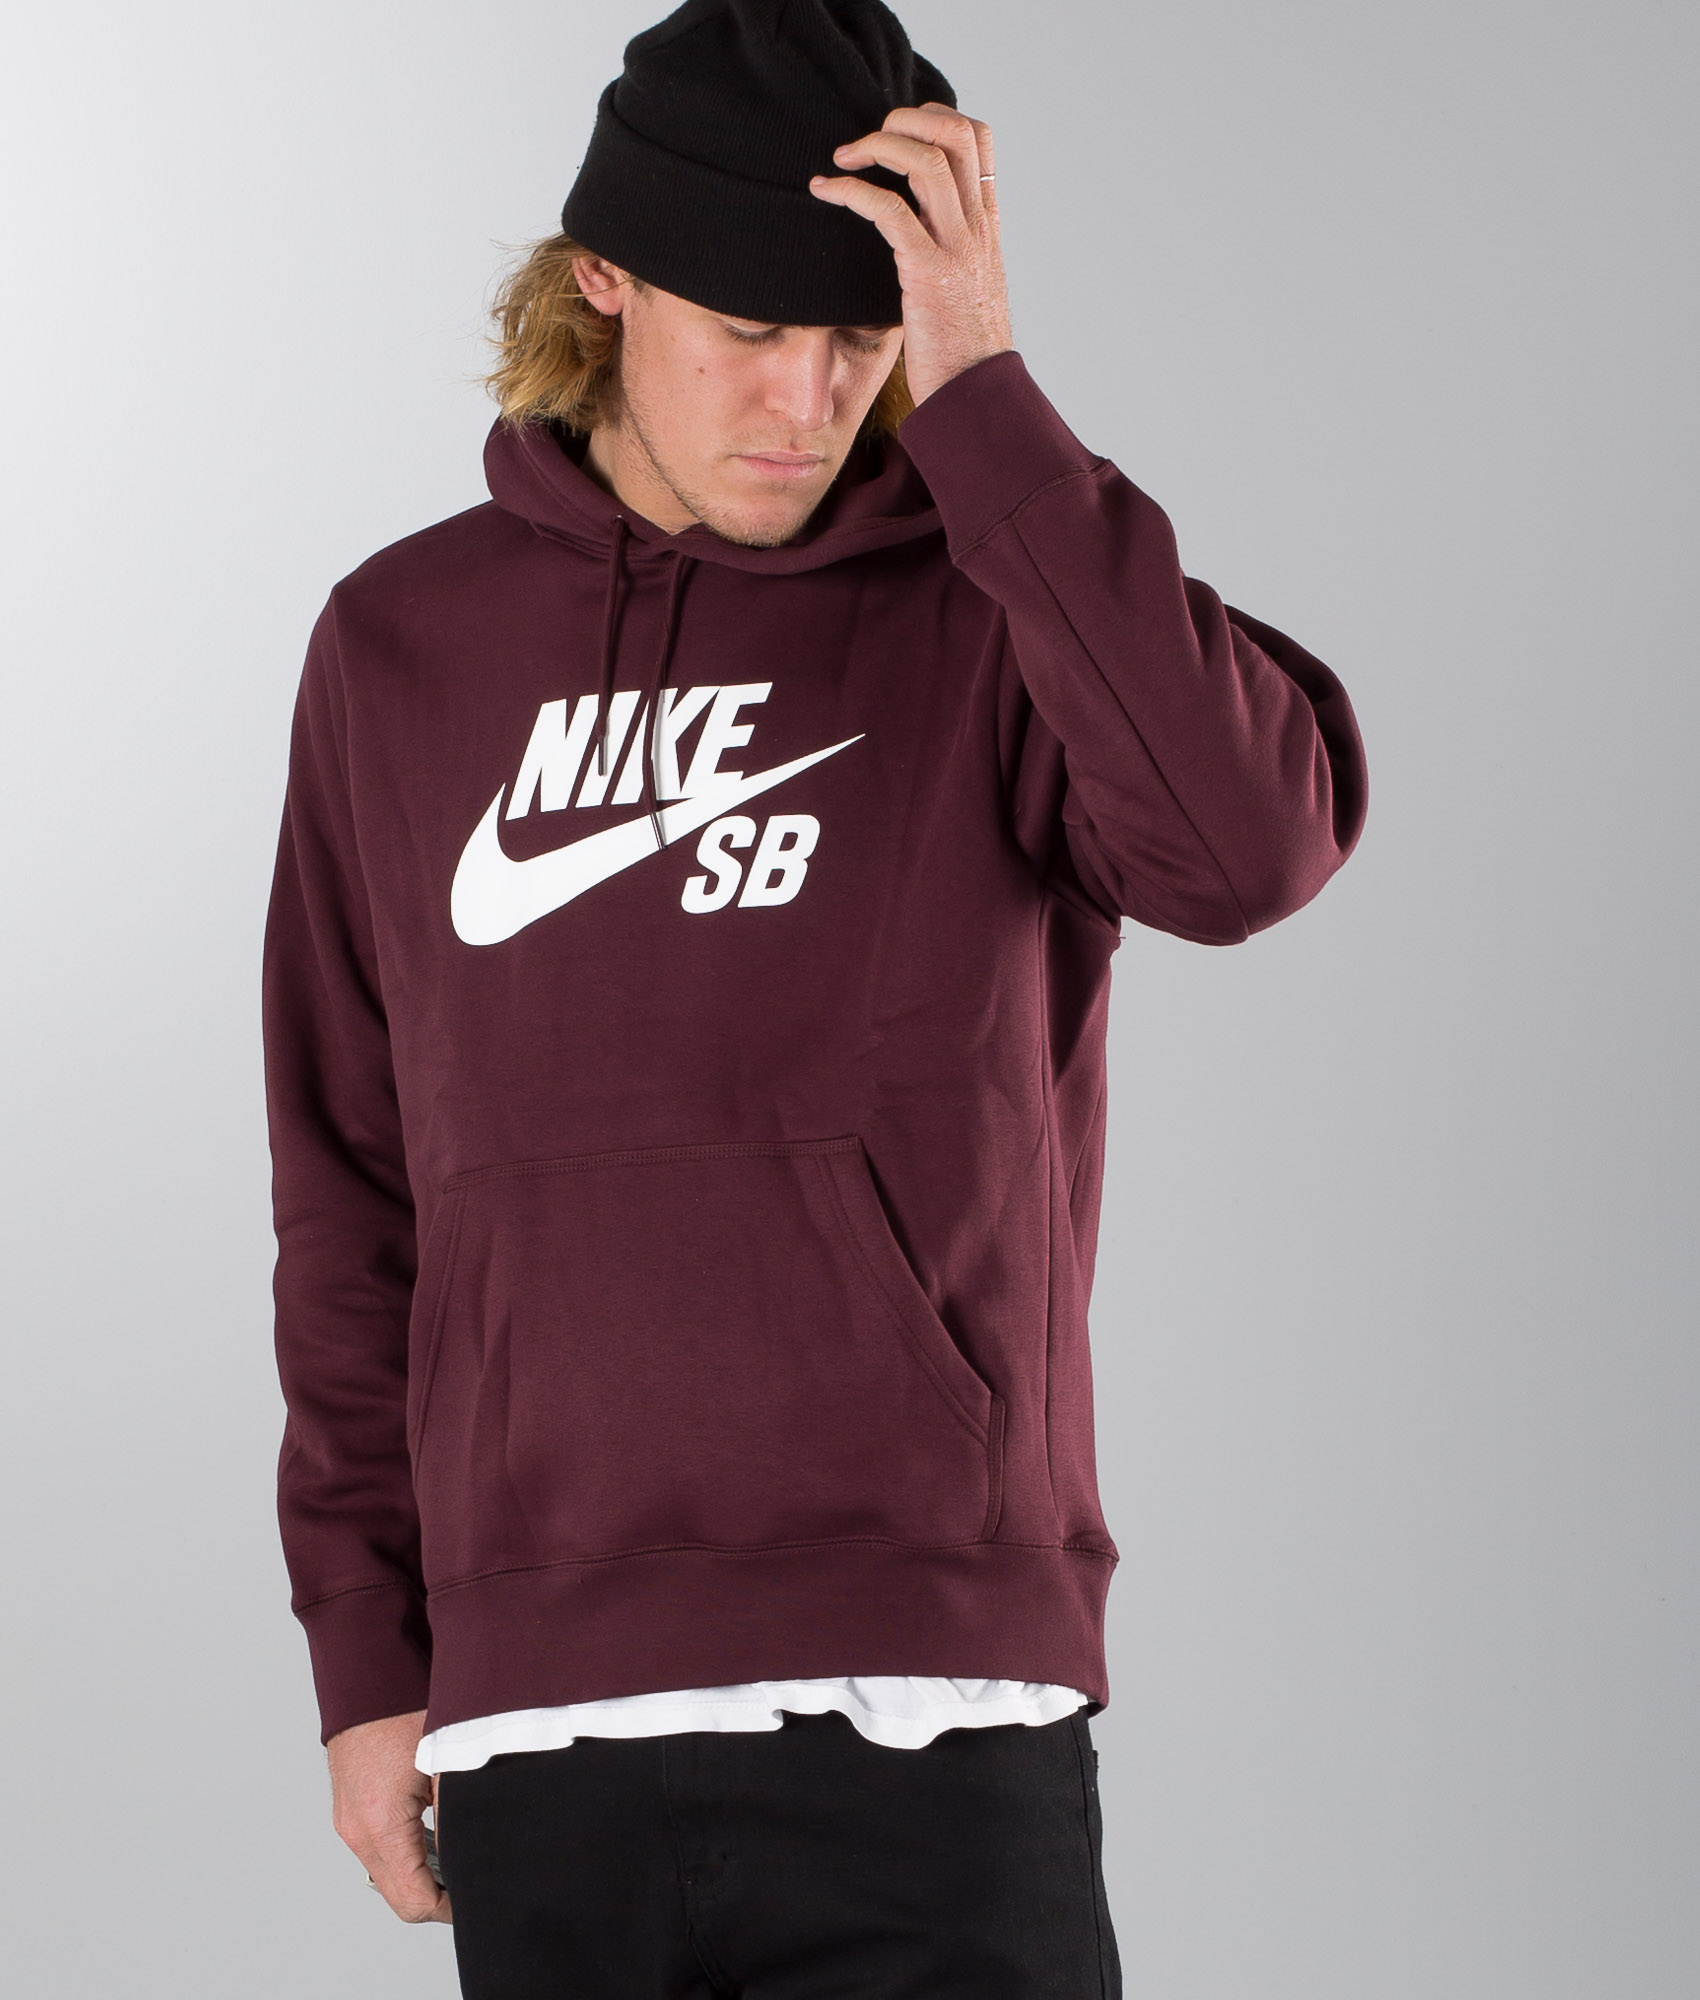 Nike Sb Icon Hoodie Burgundy Crush/White - Ridestore.com